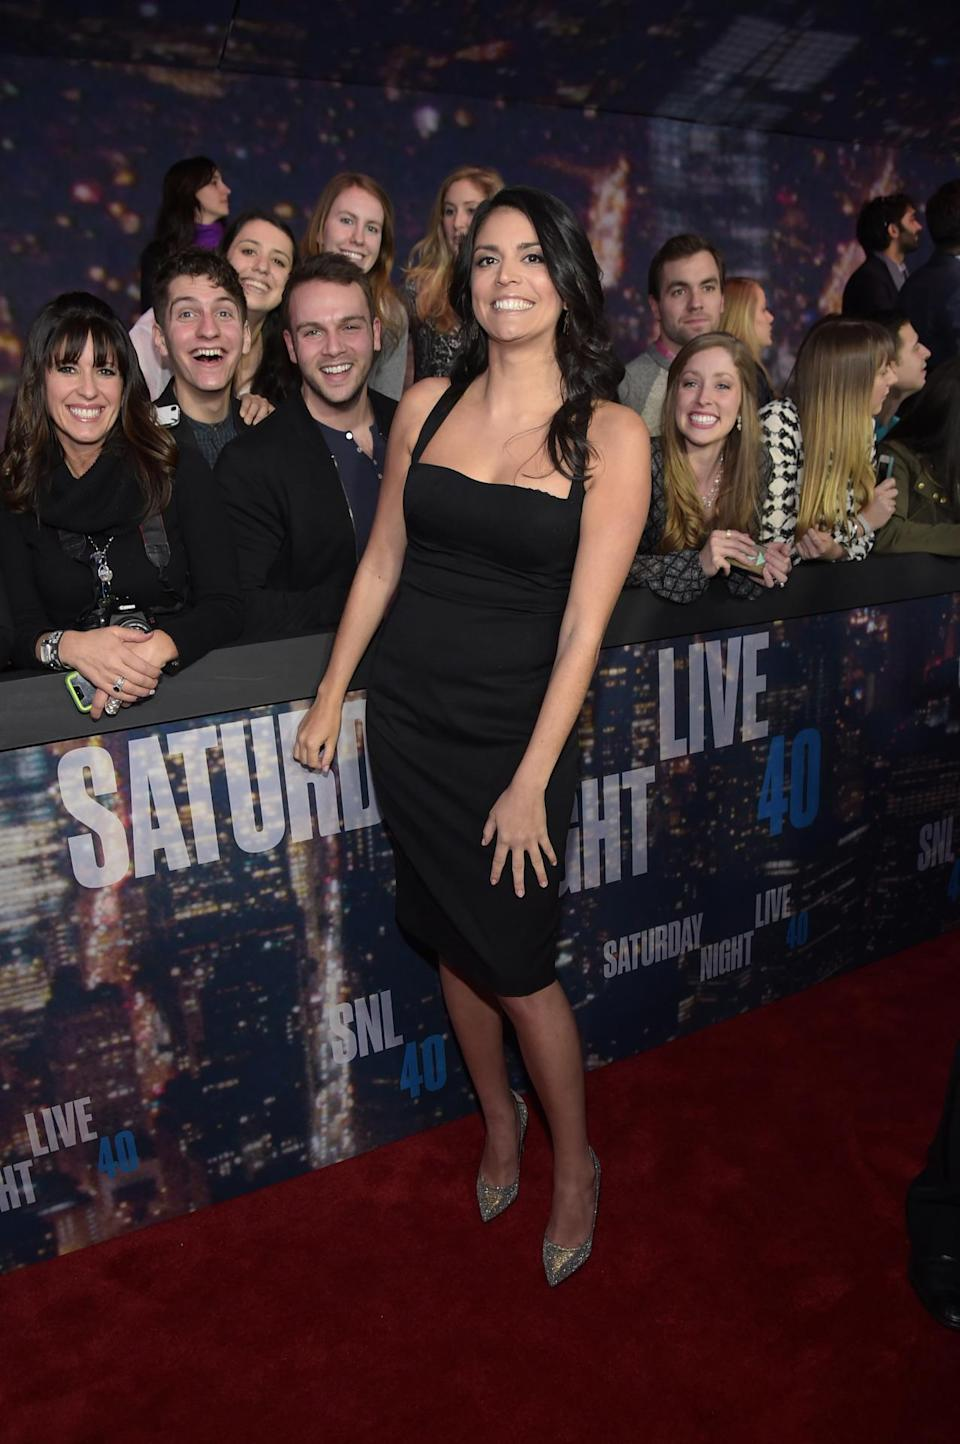 Cecily Strong hams it up with her adoring fans while wearing a '90s-like LBD with spaghetti straps.